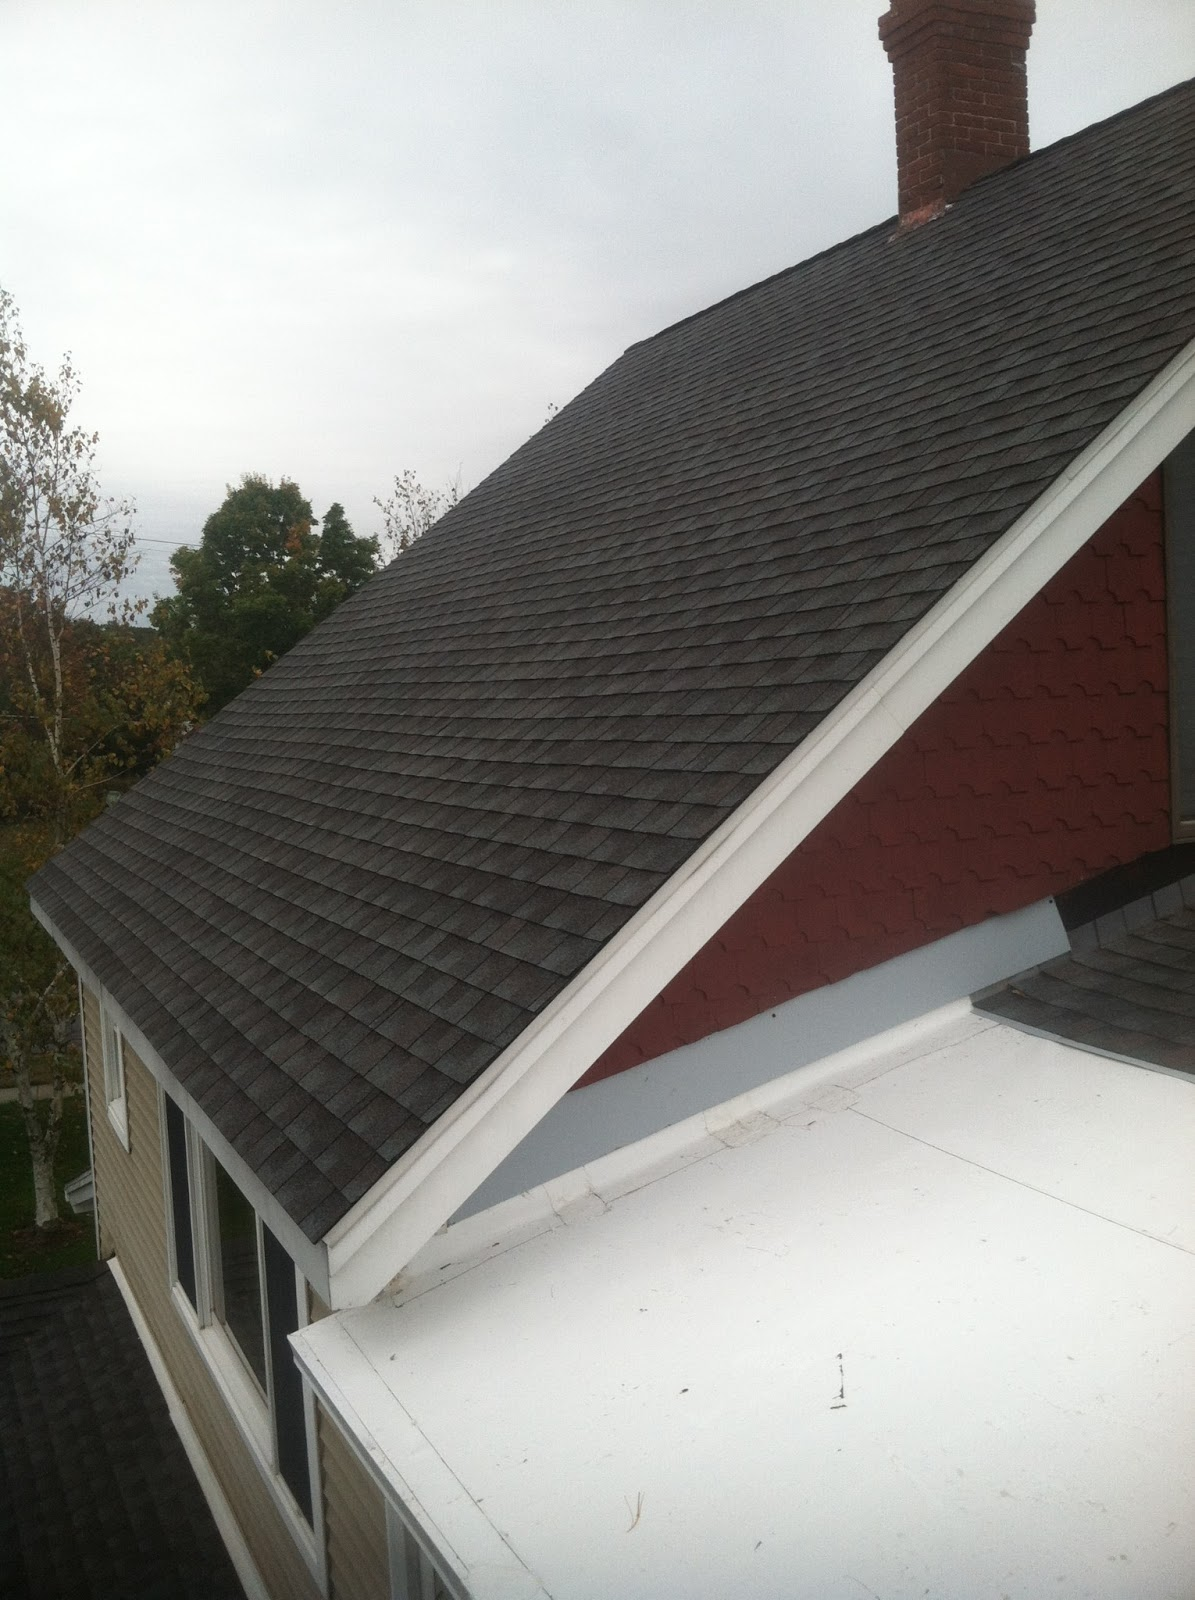 Best Flat Roof Scenario For Residential Connecticut